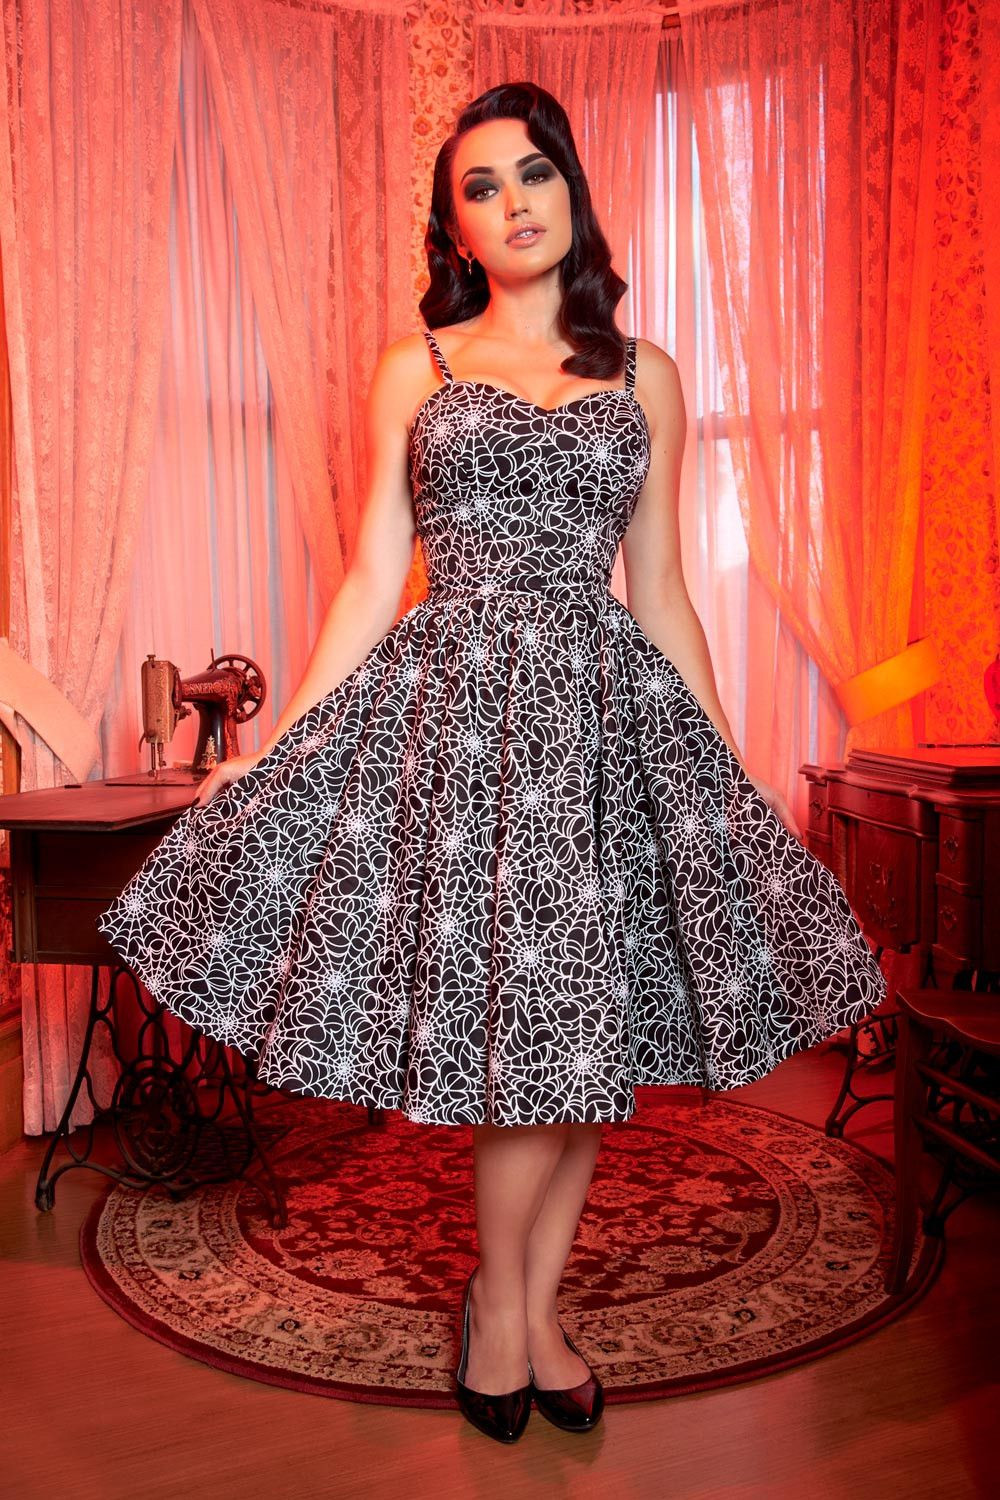 d233b96c244cf6 Pinup Couture Audrey Dress in Spider Web Print | Pinup Girl Clothing  Rockabilly Pin Up,